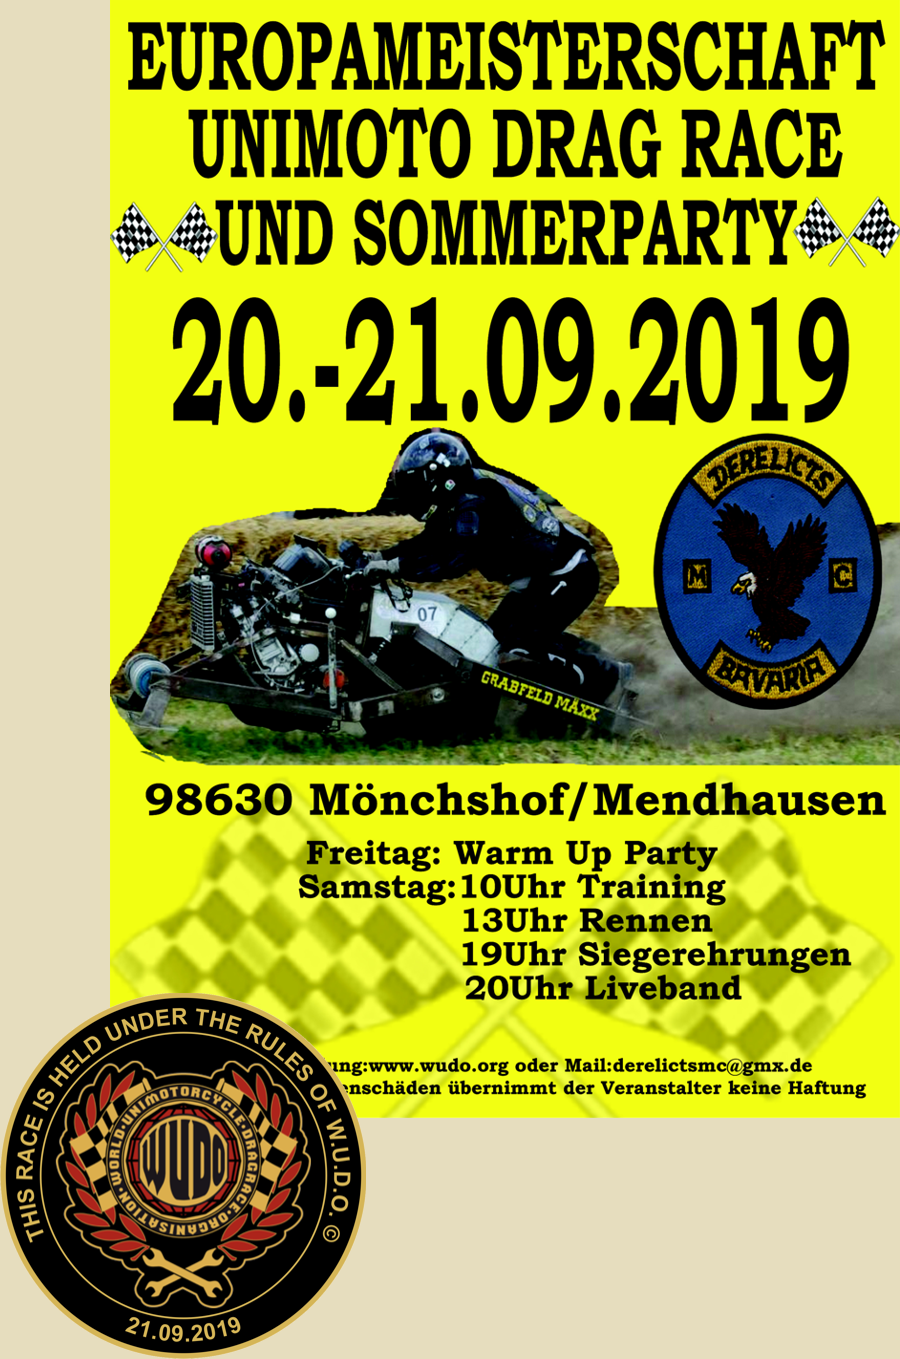 3. Grabfeld Cup Derelicts MC und EM im Unimotocycle Drag Race 2019